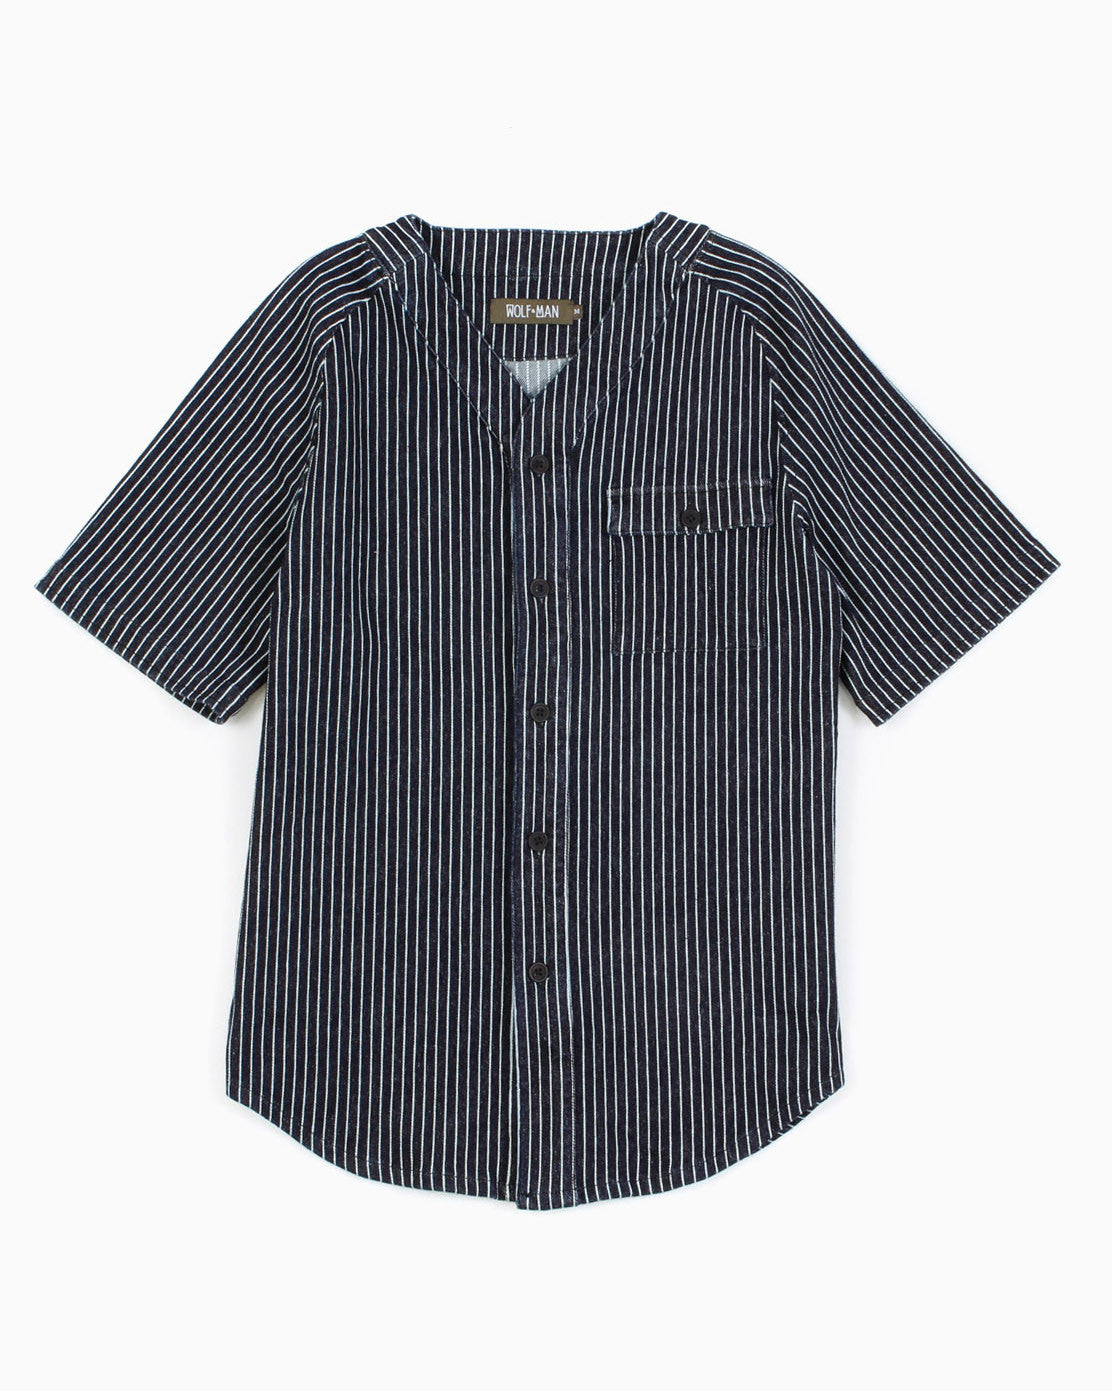 Men's Curt Knit Baseball Jersey (Indigo Blue)